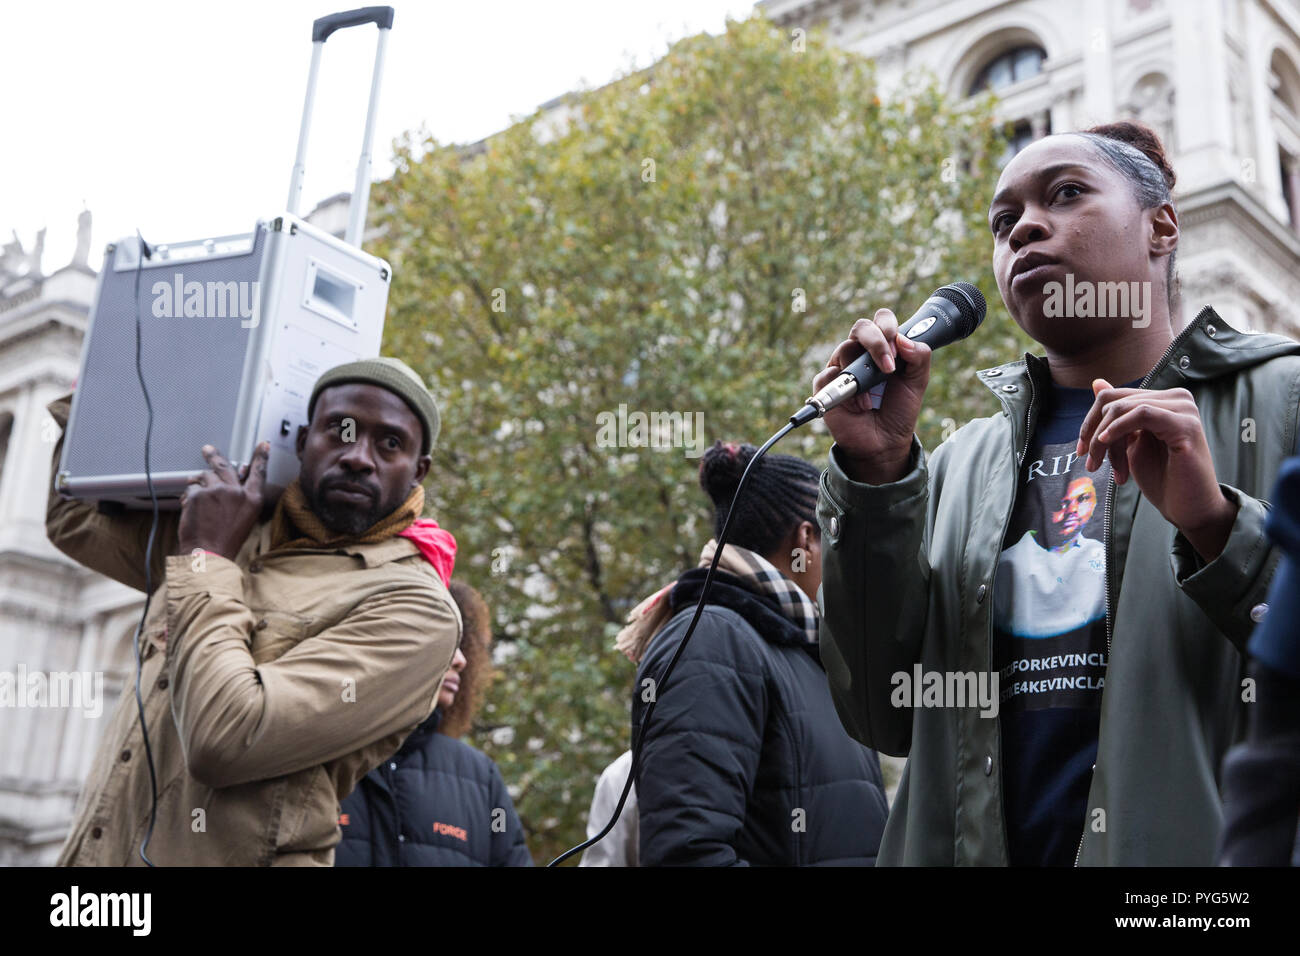 London, UK. 27th October, 2018. Tellecia Clarke, sister of Kevin Clarke, addresses campaigners from the United Families and Friends Campaign (UFFC) taking part in the 20th annual procession to Downing Street in remembrance of family members and friends who died in police custody, prison, immigration detention or secure psychiatric hospitals. Kevin Clarke, 35, died in Lewisham in March 2018 after being restrained by up to 9 police officers while having a mental health crisis. Credit: Mark Kerrison/Alamy Live News - Stock Image